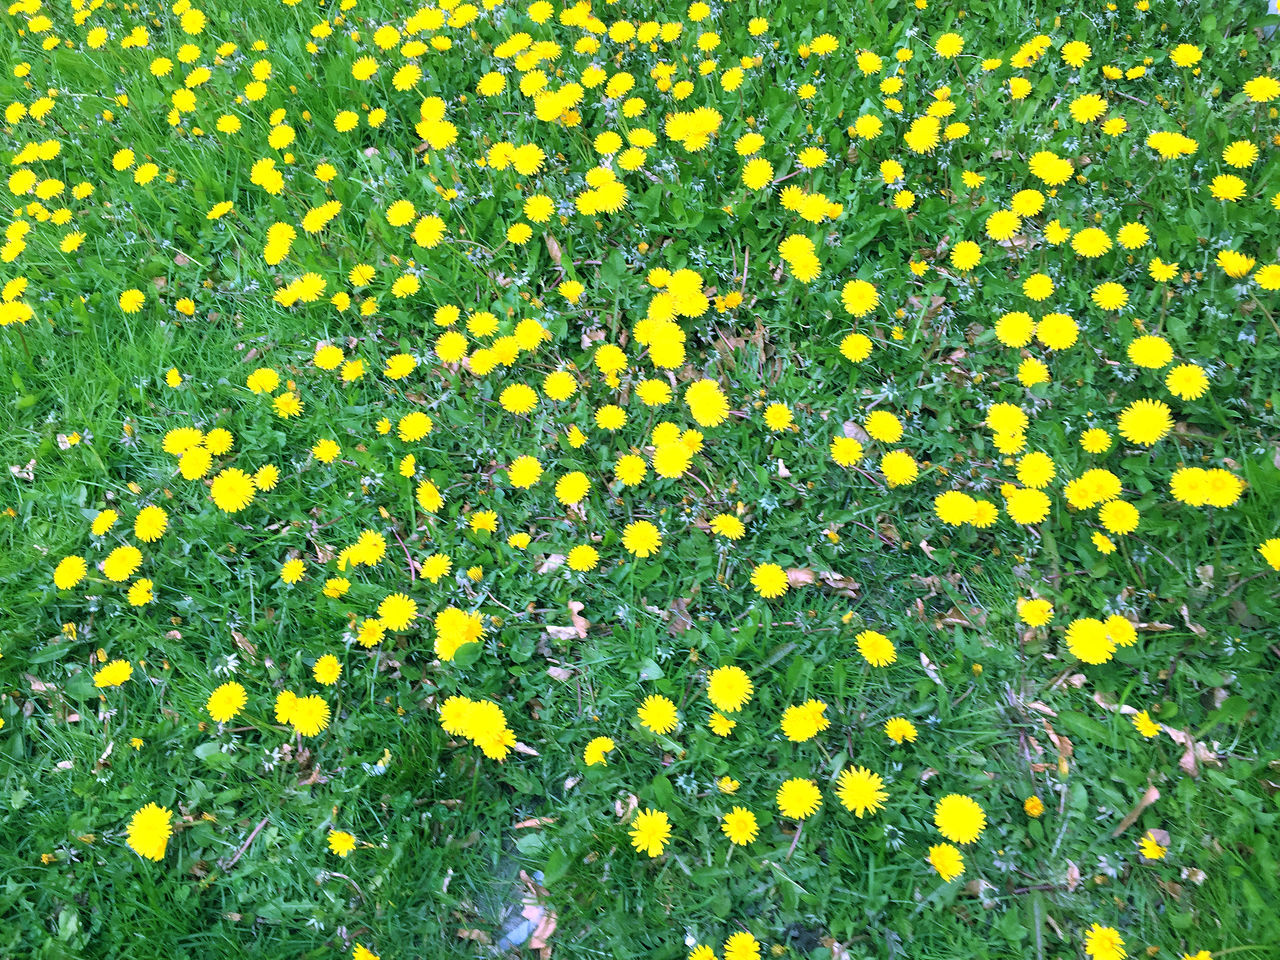 Nature in the city park under spring Beauty In Nature Blooming Blossoming  Botanical City Colorful Field Flower Fragility Freshness Grass Green Color Growth Meadow Mustard Plant Nature Nature Outdoors People Petal Plant Spring Summer Tranquility Yellow